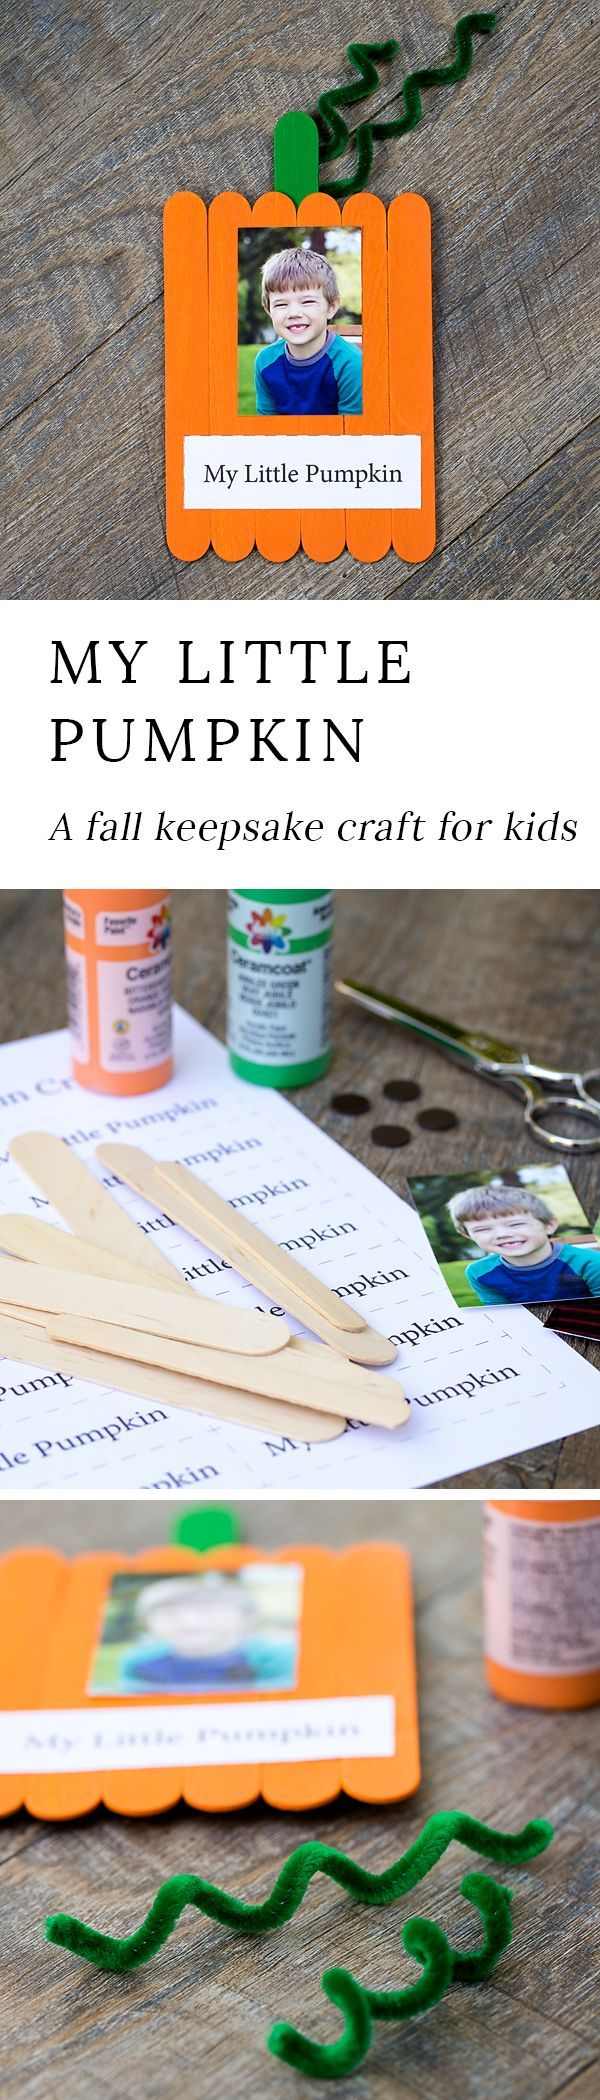 Just in time for fall, learn how to make an adorable My Little Pumpkin Keepsake Craft with craft sticks, paint, and glue. #fallcrafts via @https://www.pinterest.com/fireflymudpie/